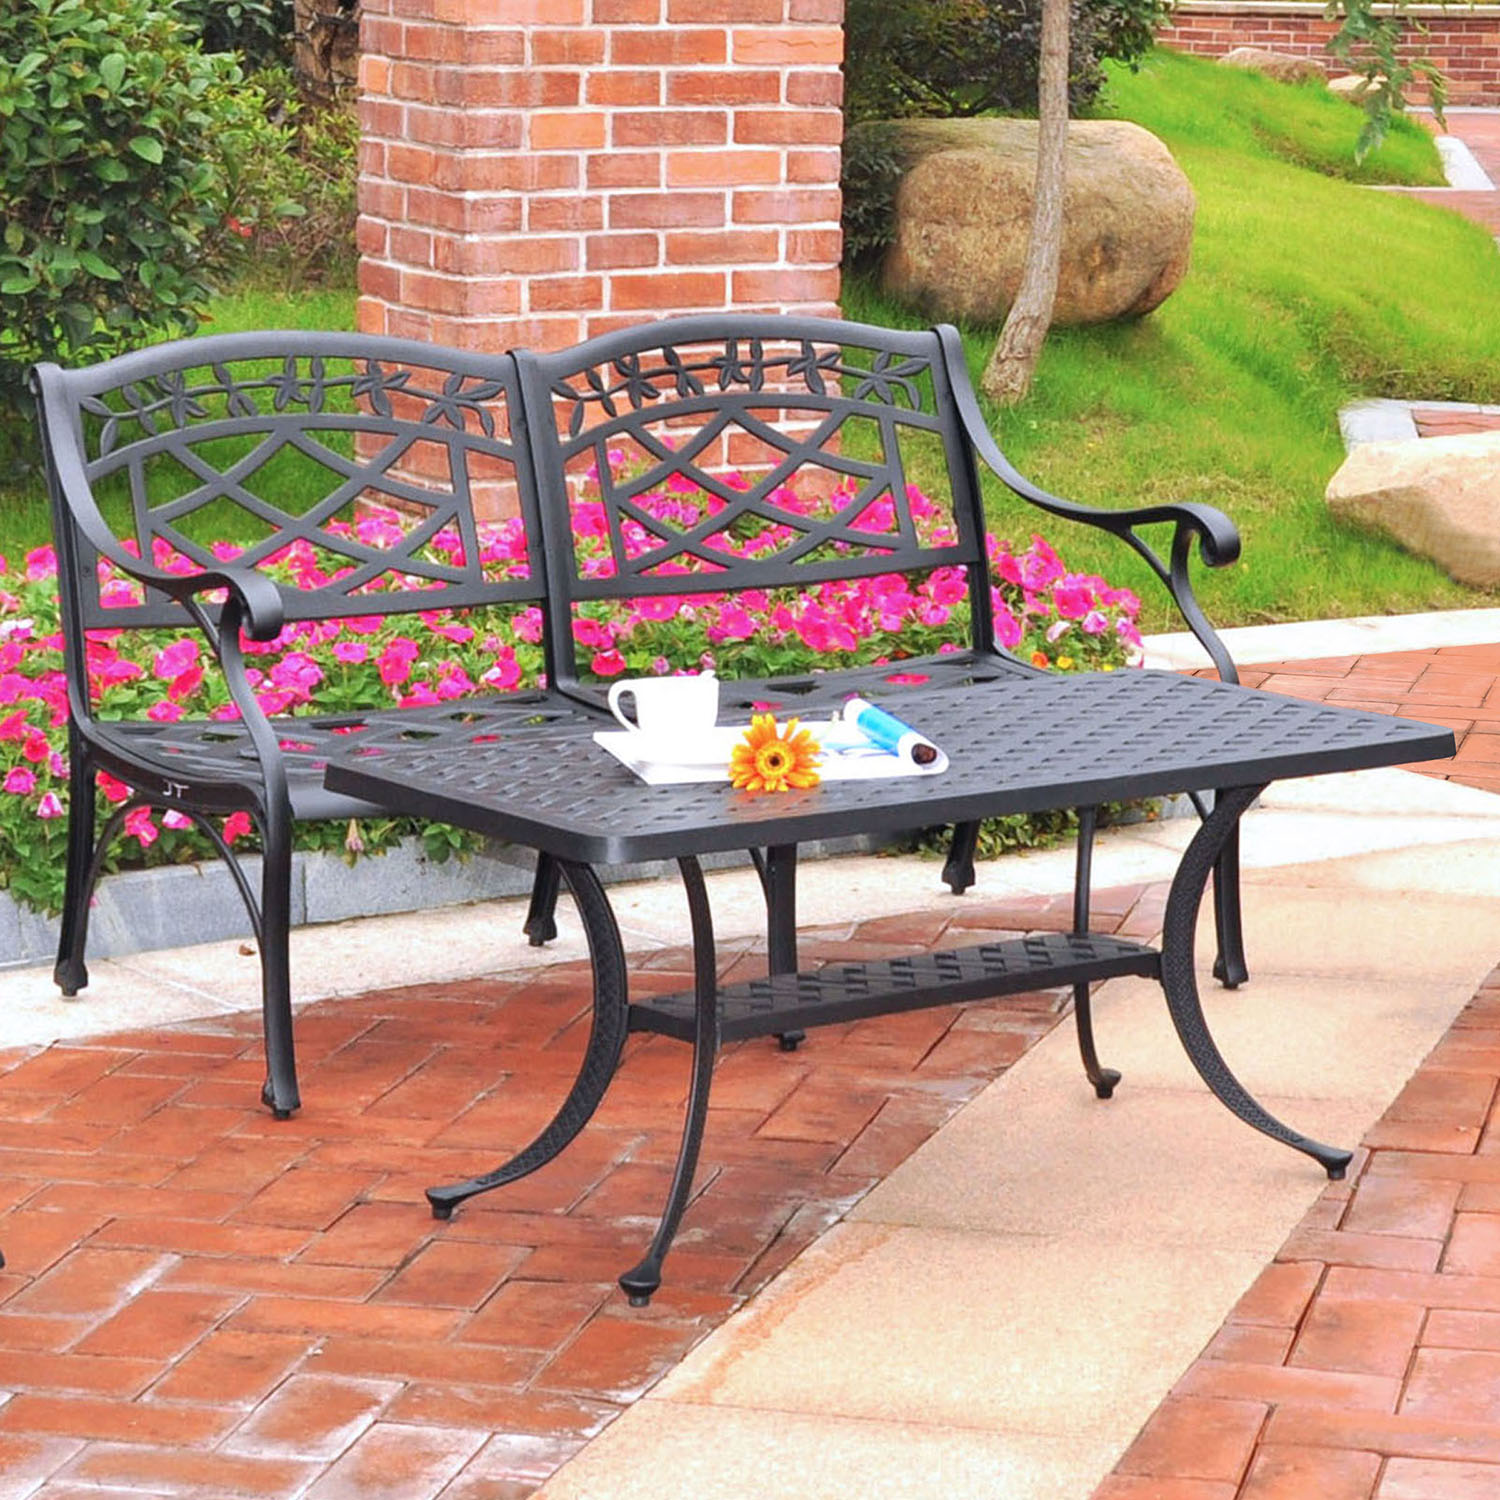 Sedona Loveseat and Cocktail Table - Cast Aluminum, Charcoal Black - CROS-KO60005BK